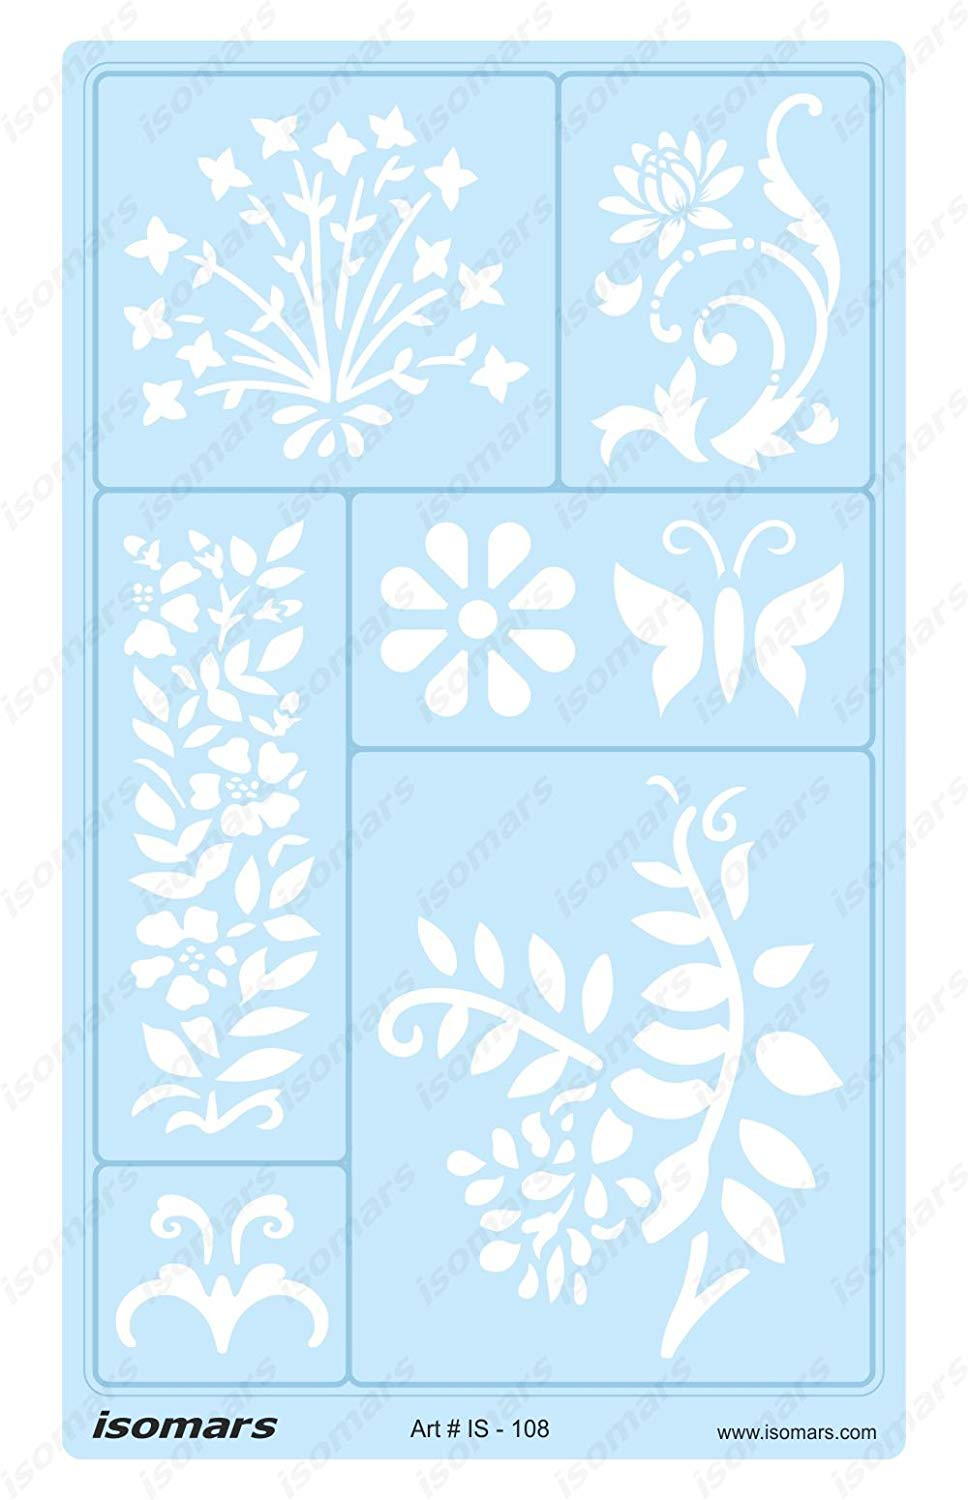 Isomars Flower Leaves Ornaments and Patterns Design Template